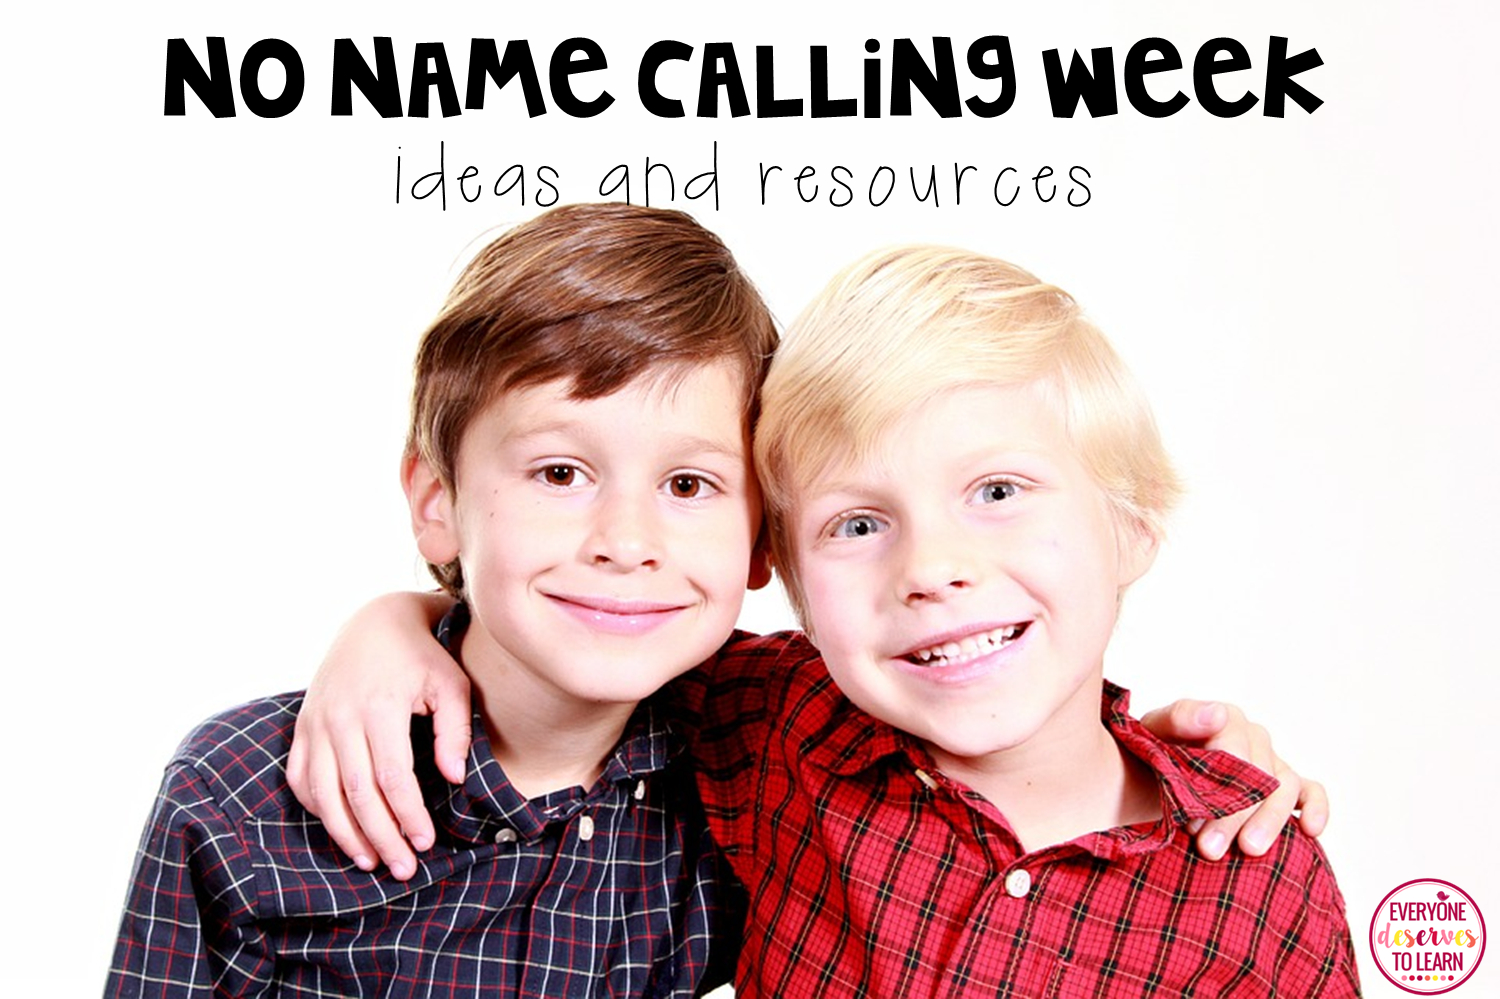 10 Elegant No Name Calling Week Ideas no name calling week ideas and resources everyone deserves to learn 2020